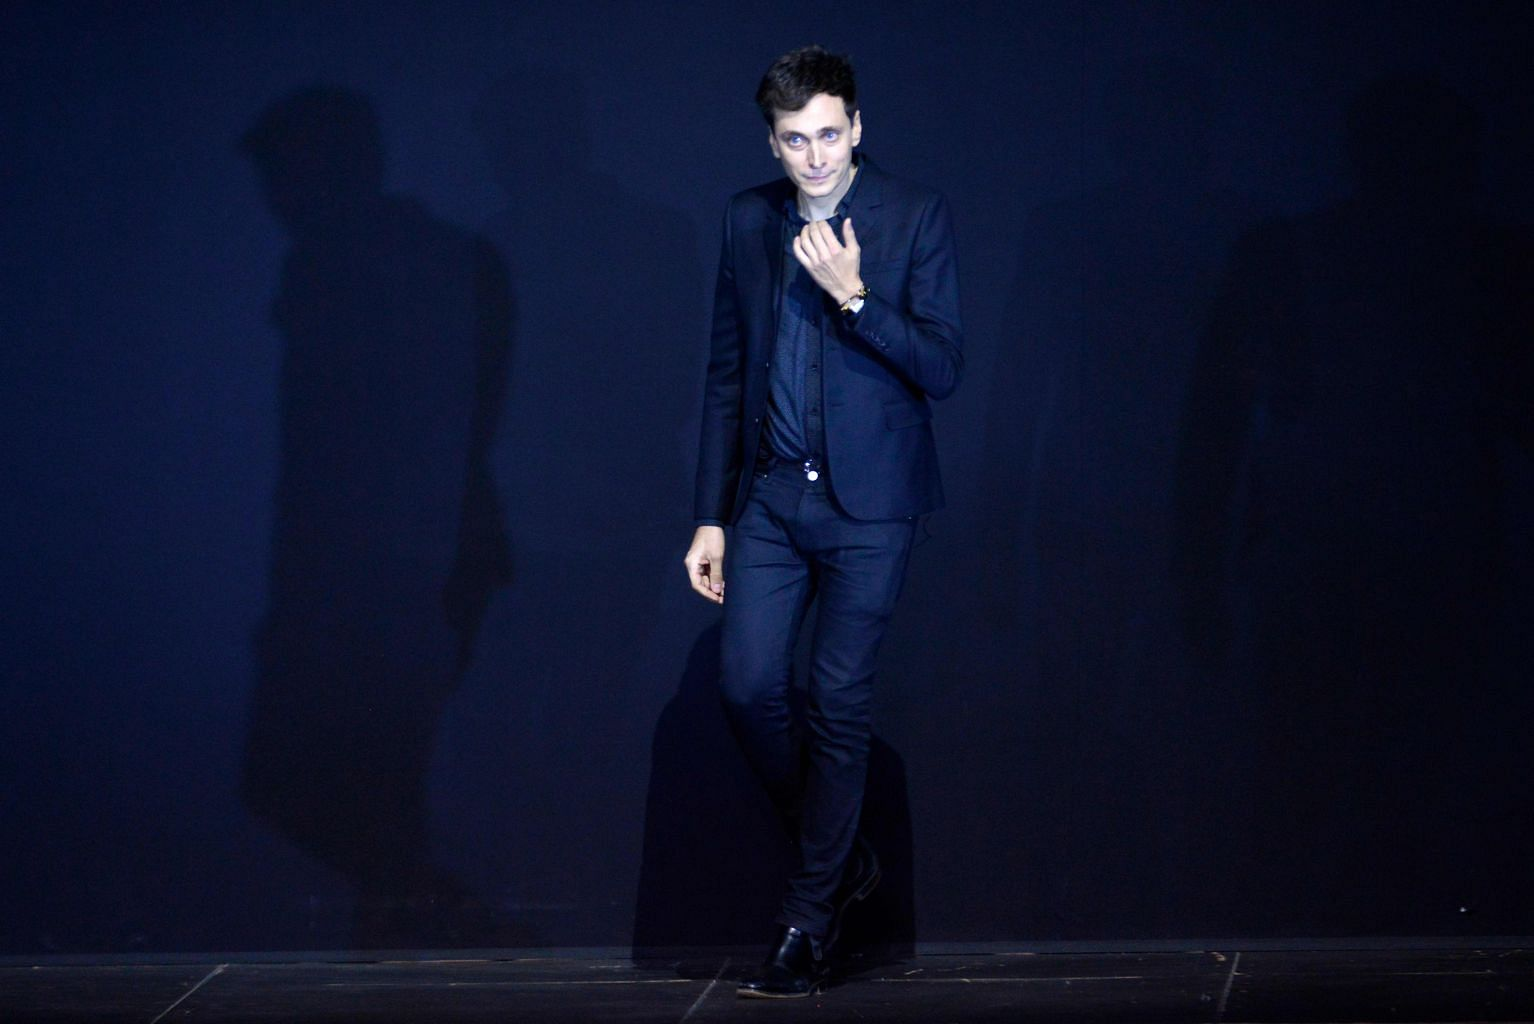 Star Designer Hedi Slimane Underpaid By 9 3m For Last Year Of Service At Saint Laurent French Court Entertainment News Top Stories The Straits Times